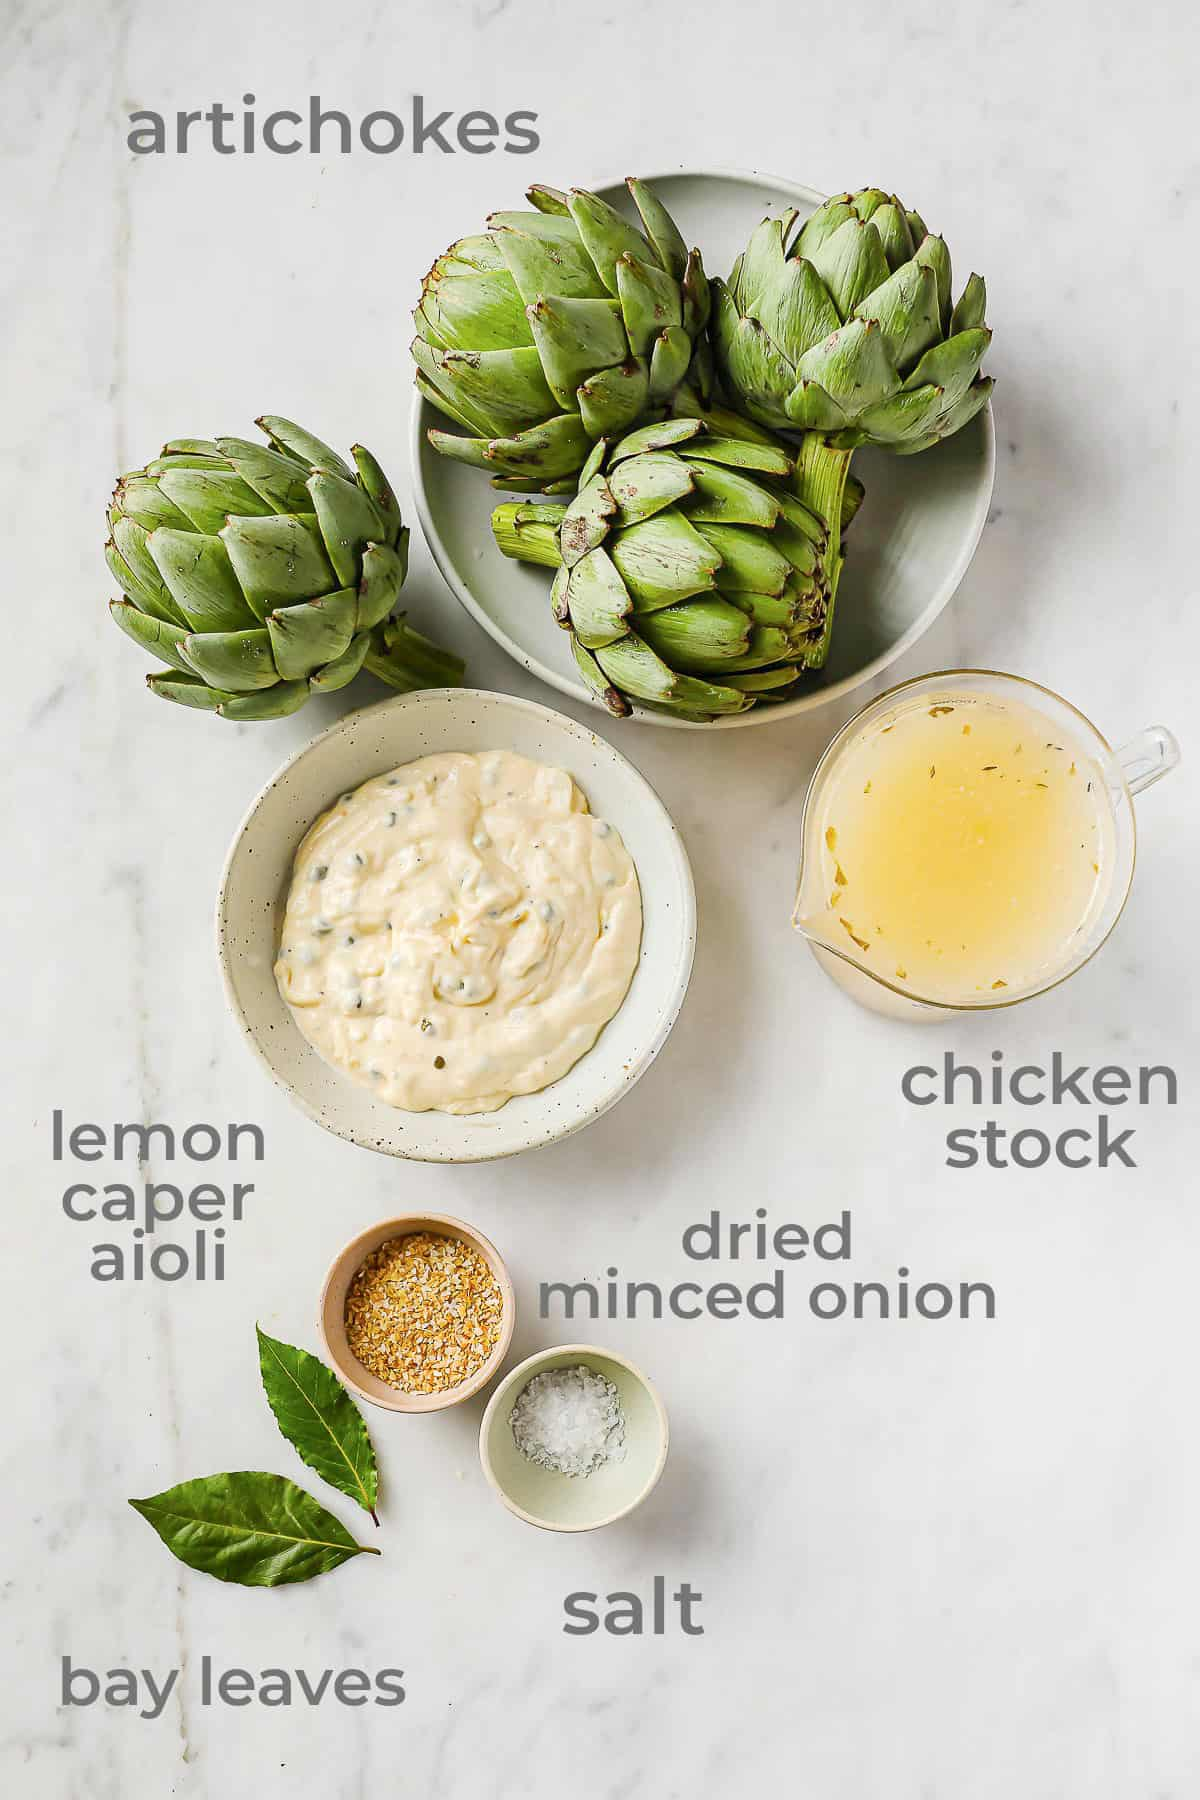 artichokes, aioli, chicken stock, dried minced onion, salt, and bay leaves all laid out in individual bowls, on a marble background